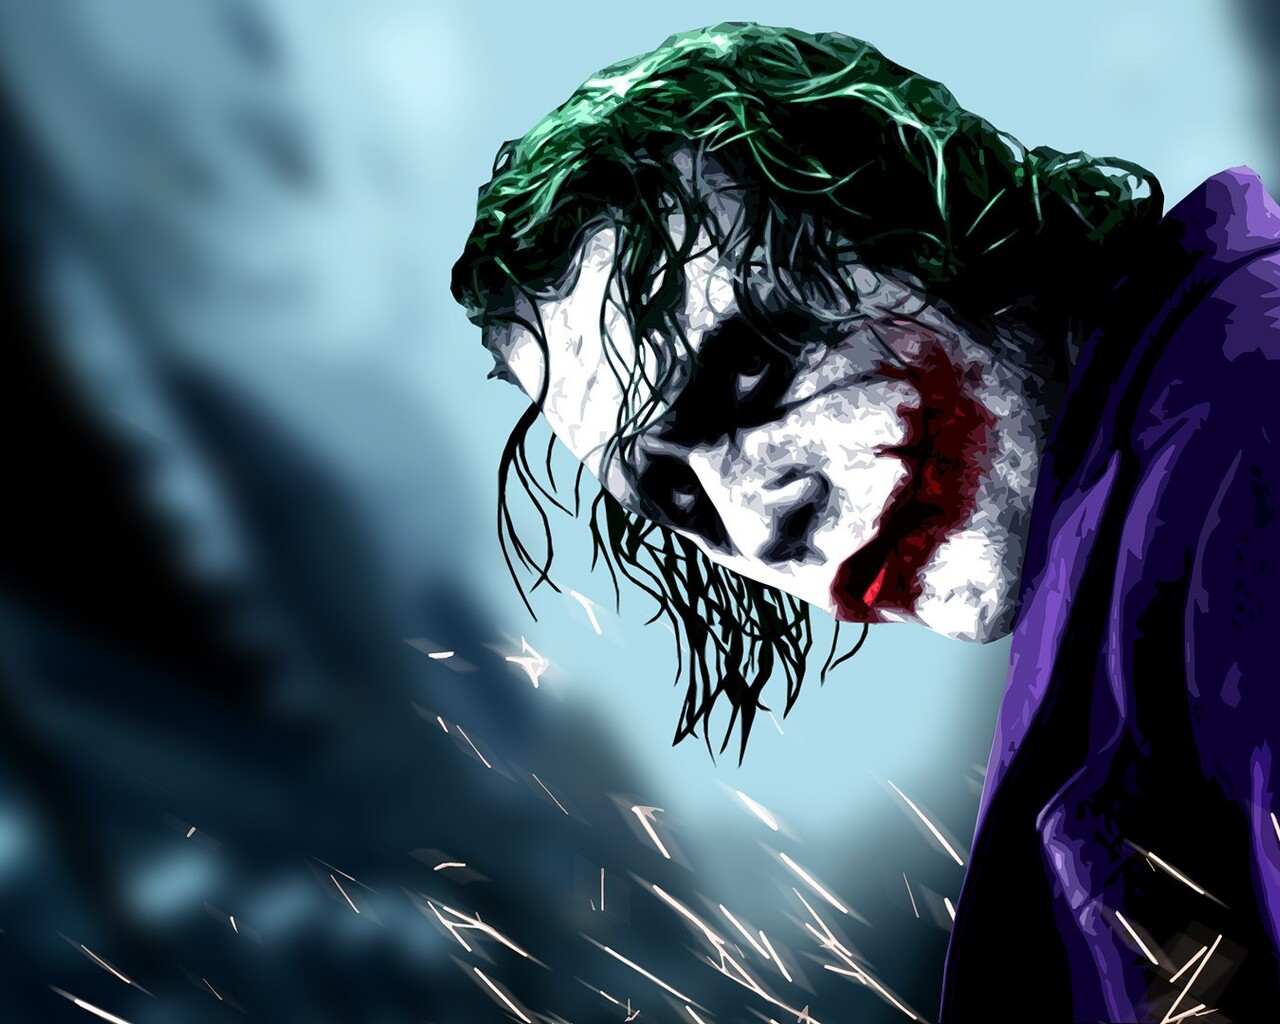 1280x1024 joker hd 1280x1024 resolution hd 4k wallpapers for Joker immagini hd